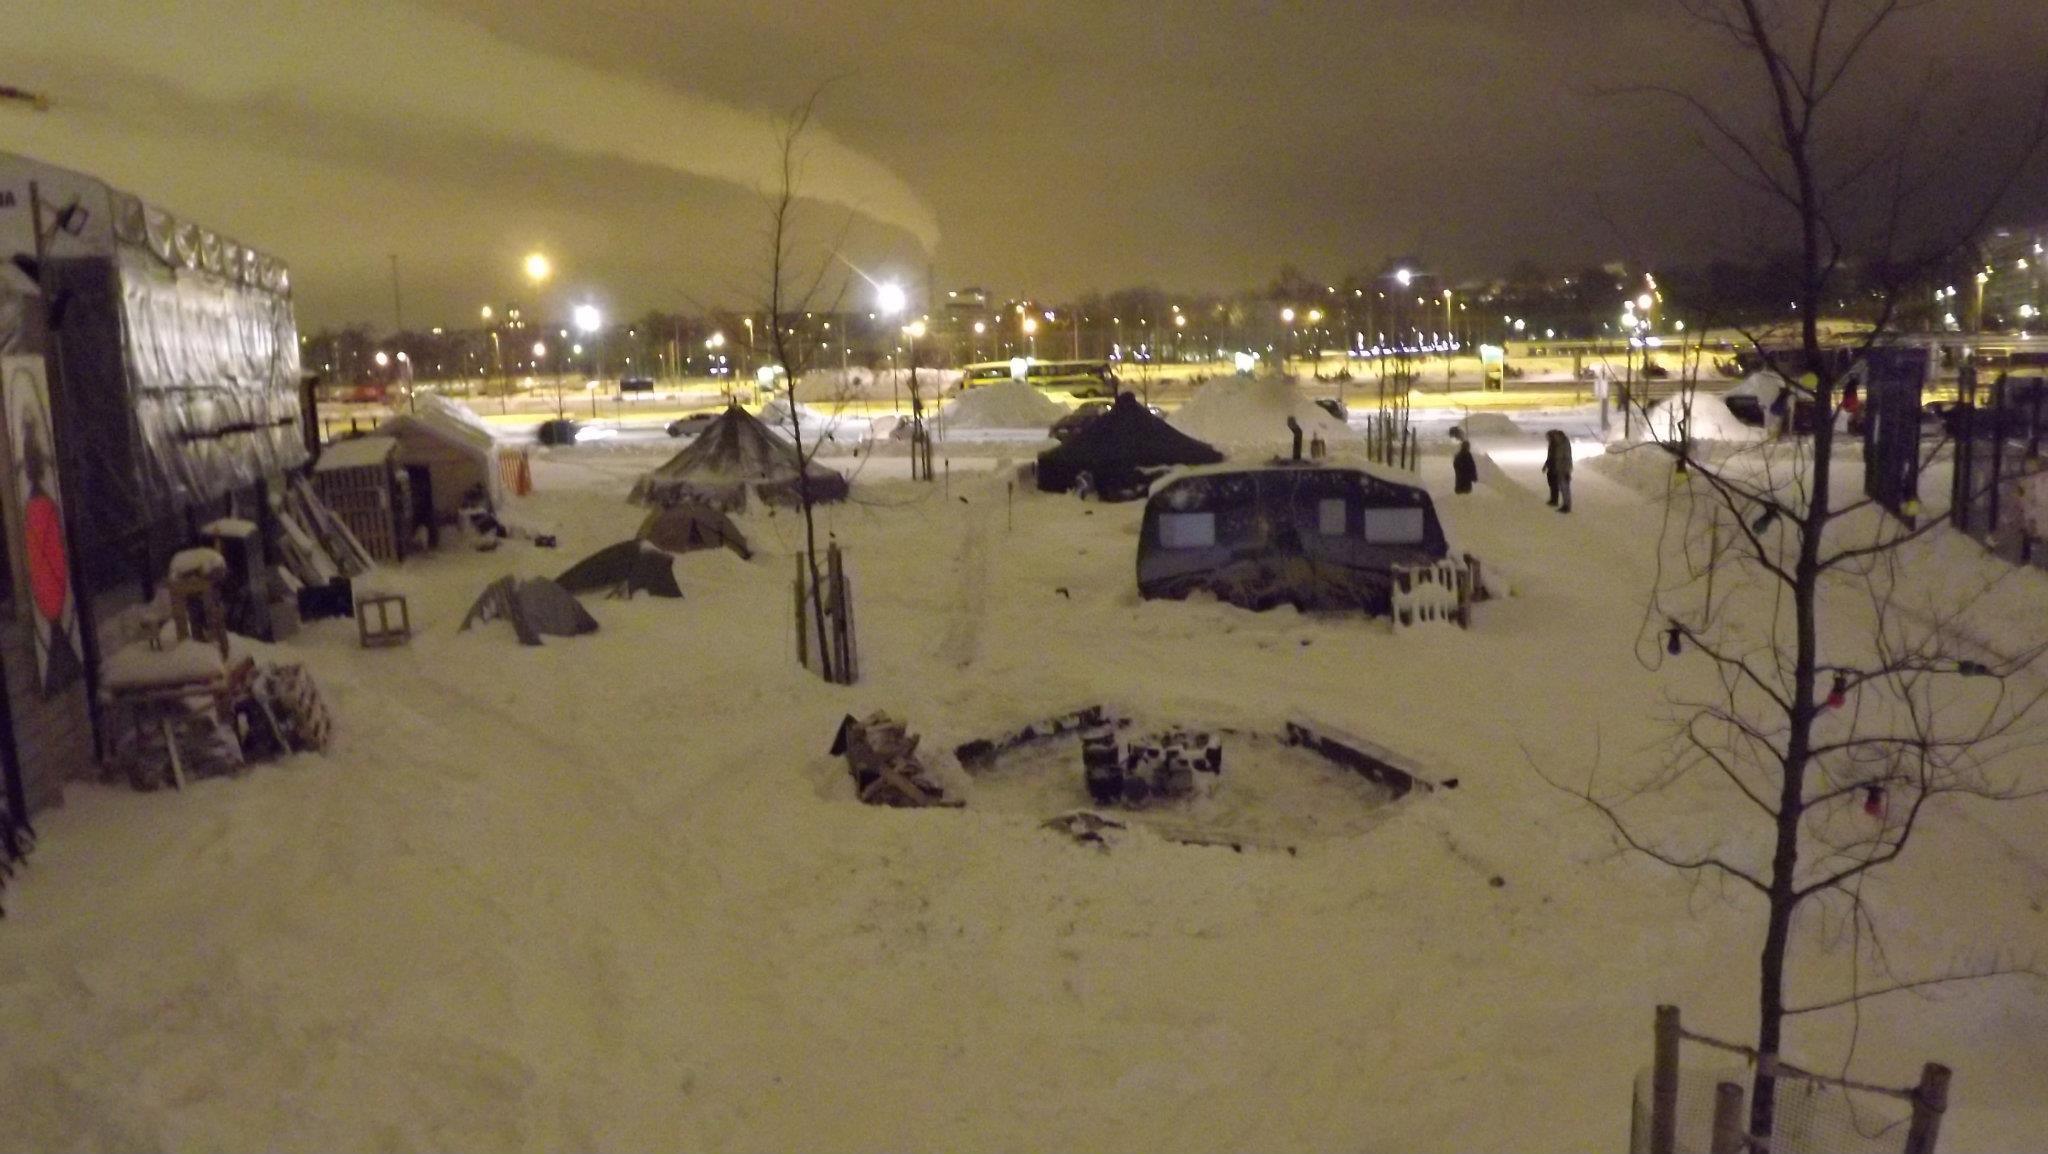 Occupy Helsinki camp evicted